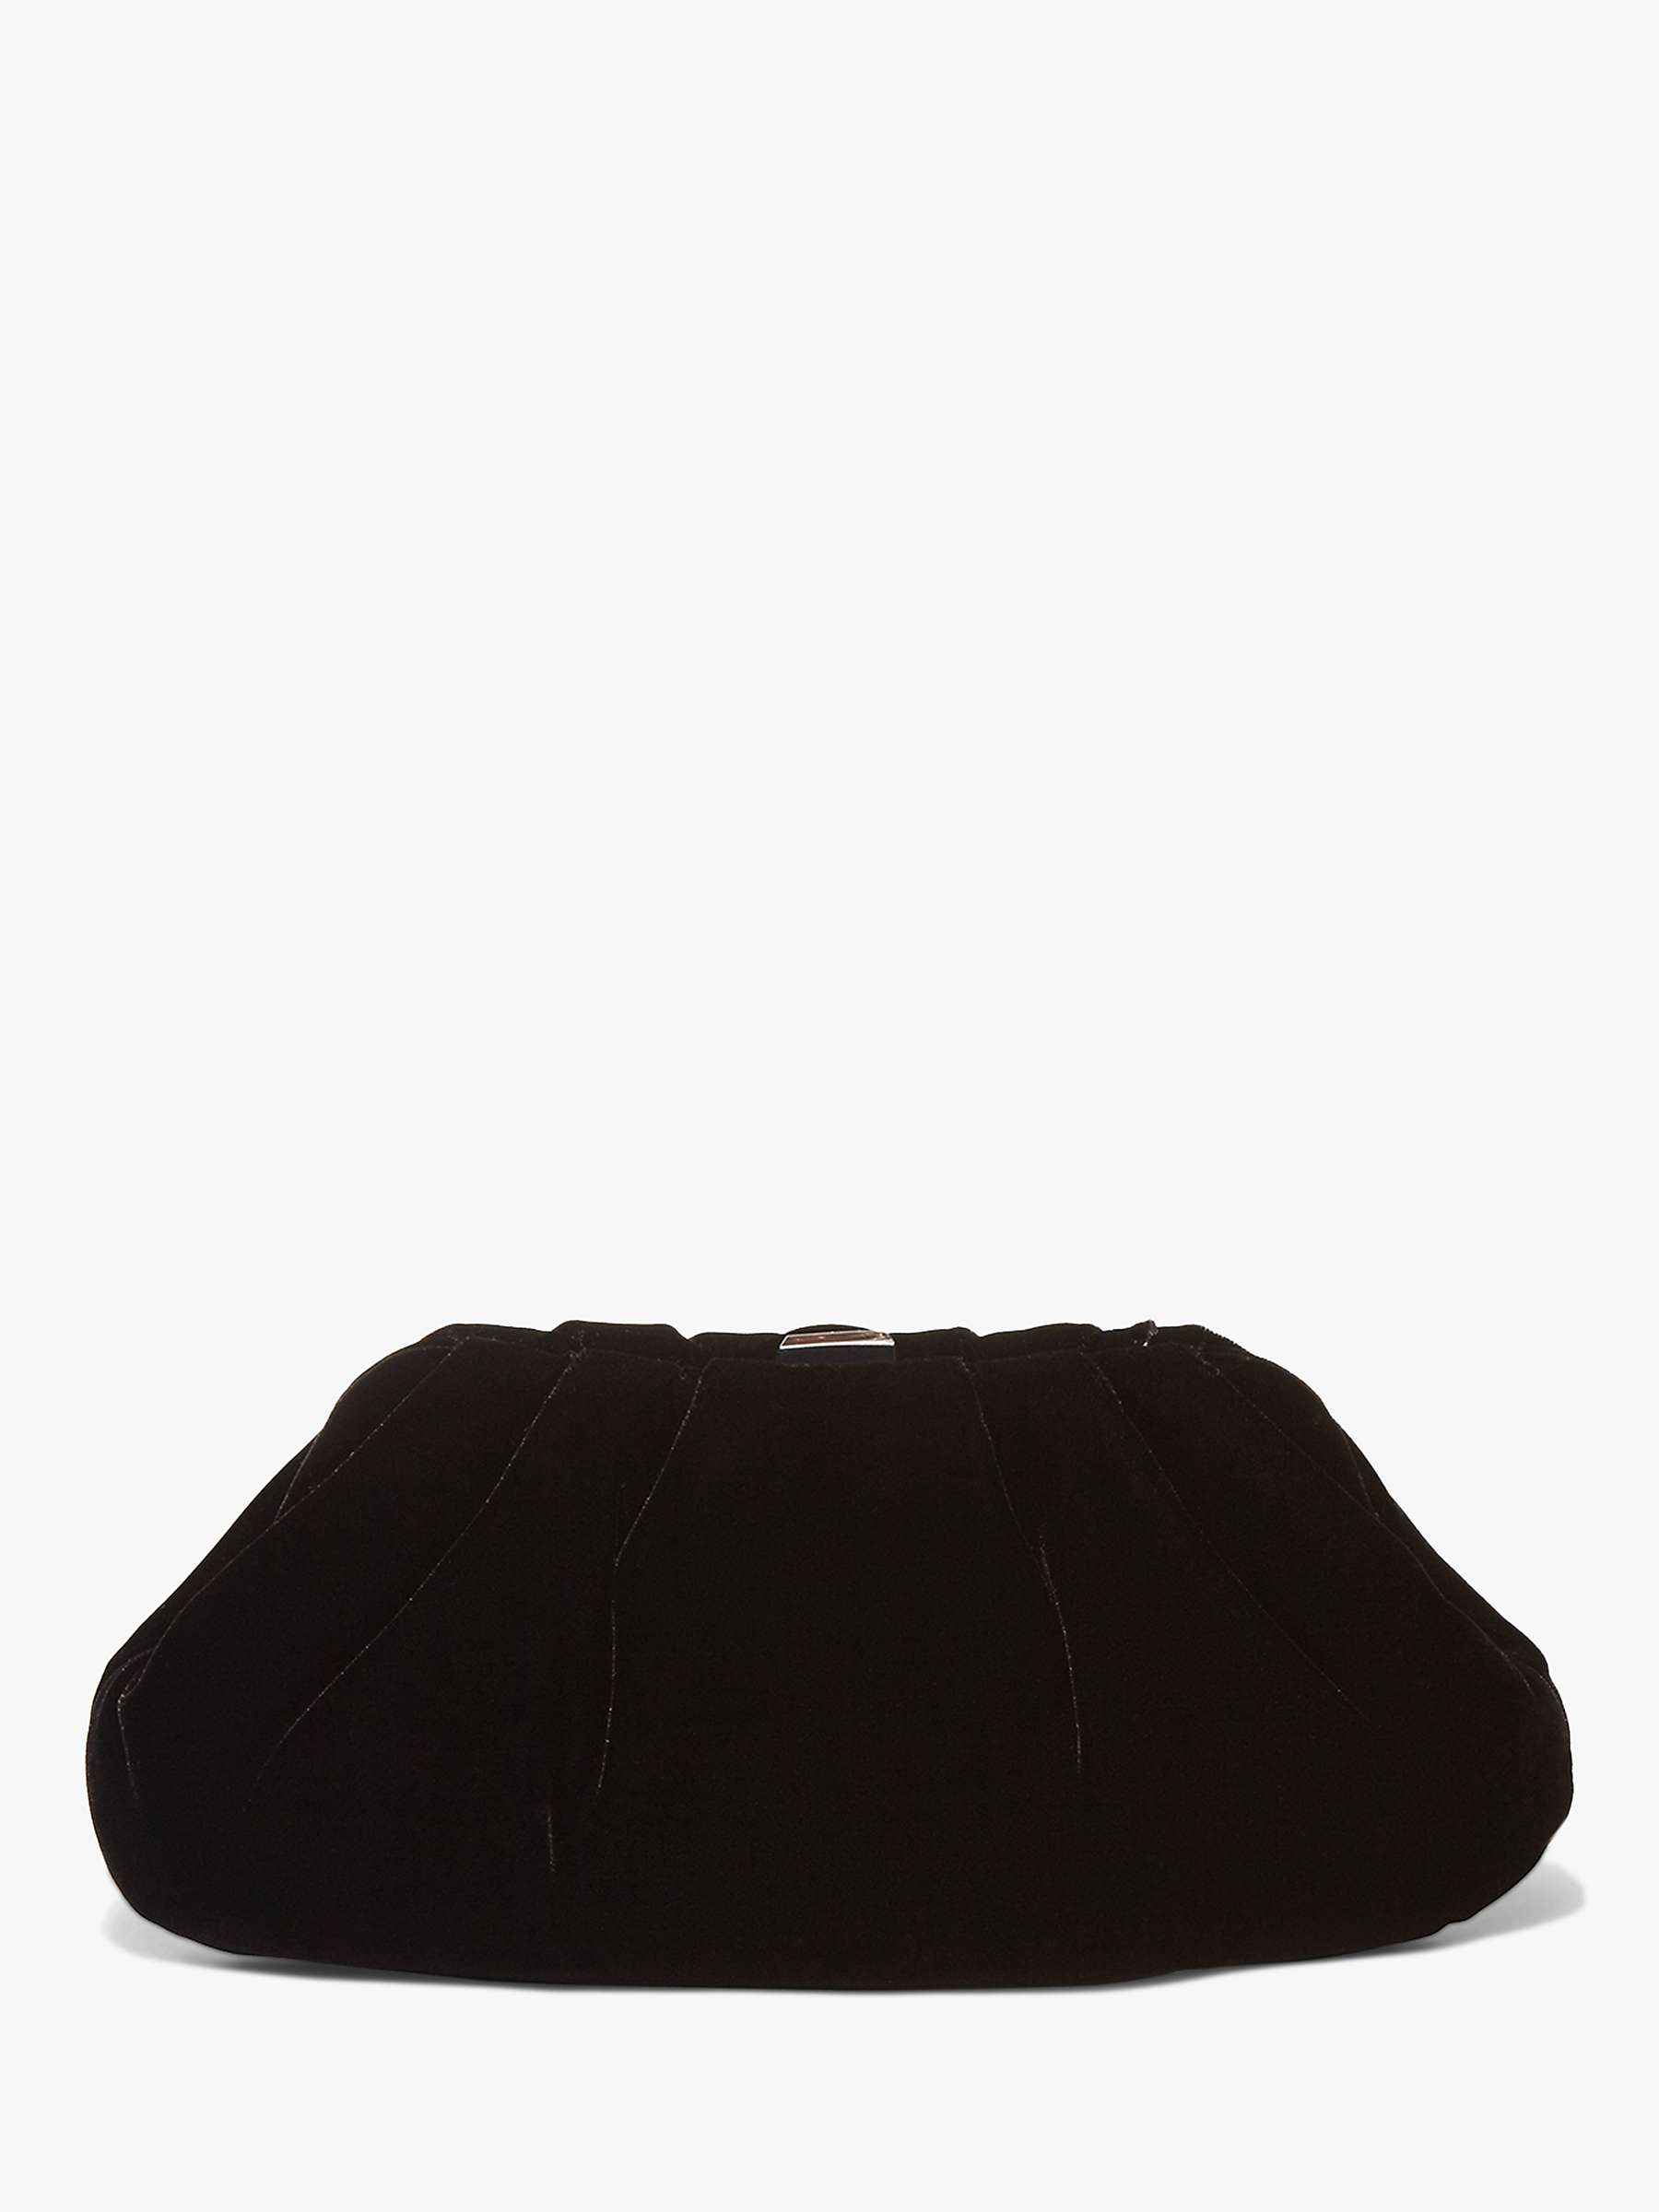 Velvet Cloud Style Bag